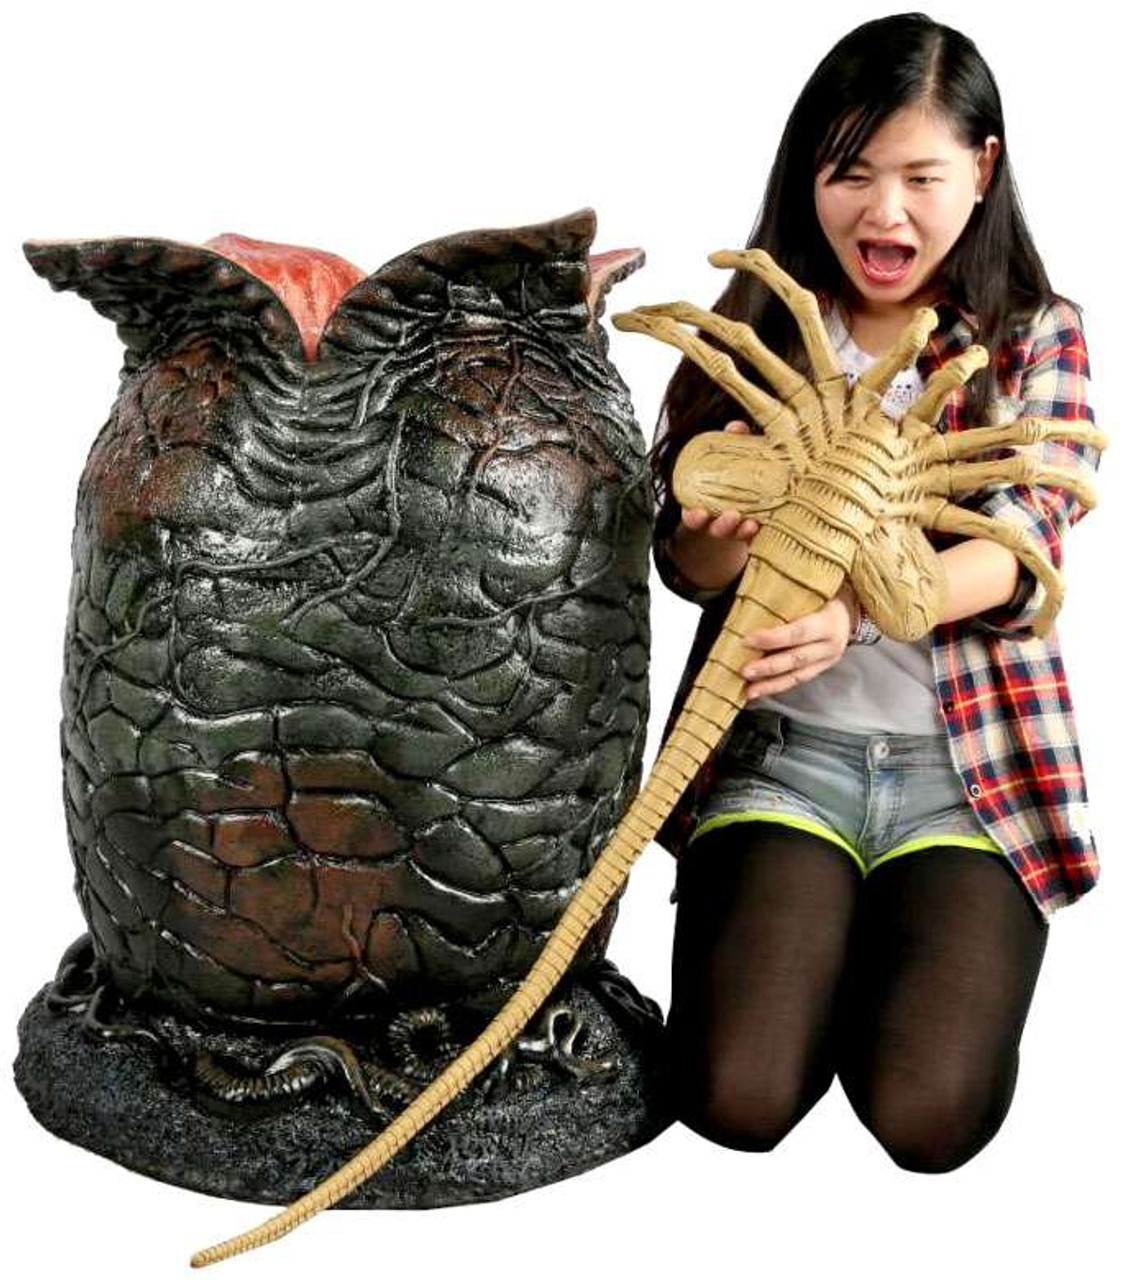 NECA Aliens Life Size Egg & Facehugger Prop Replica [with LED Lights]